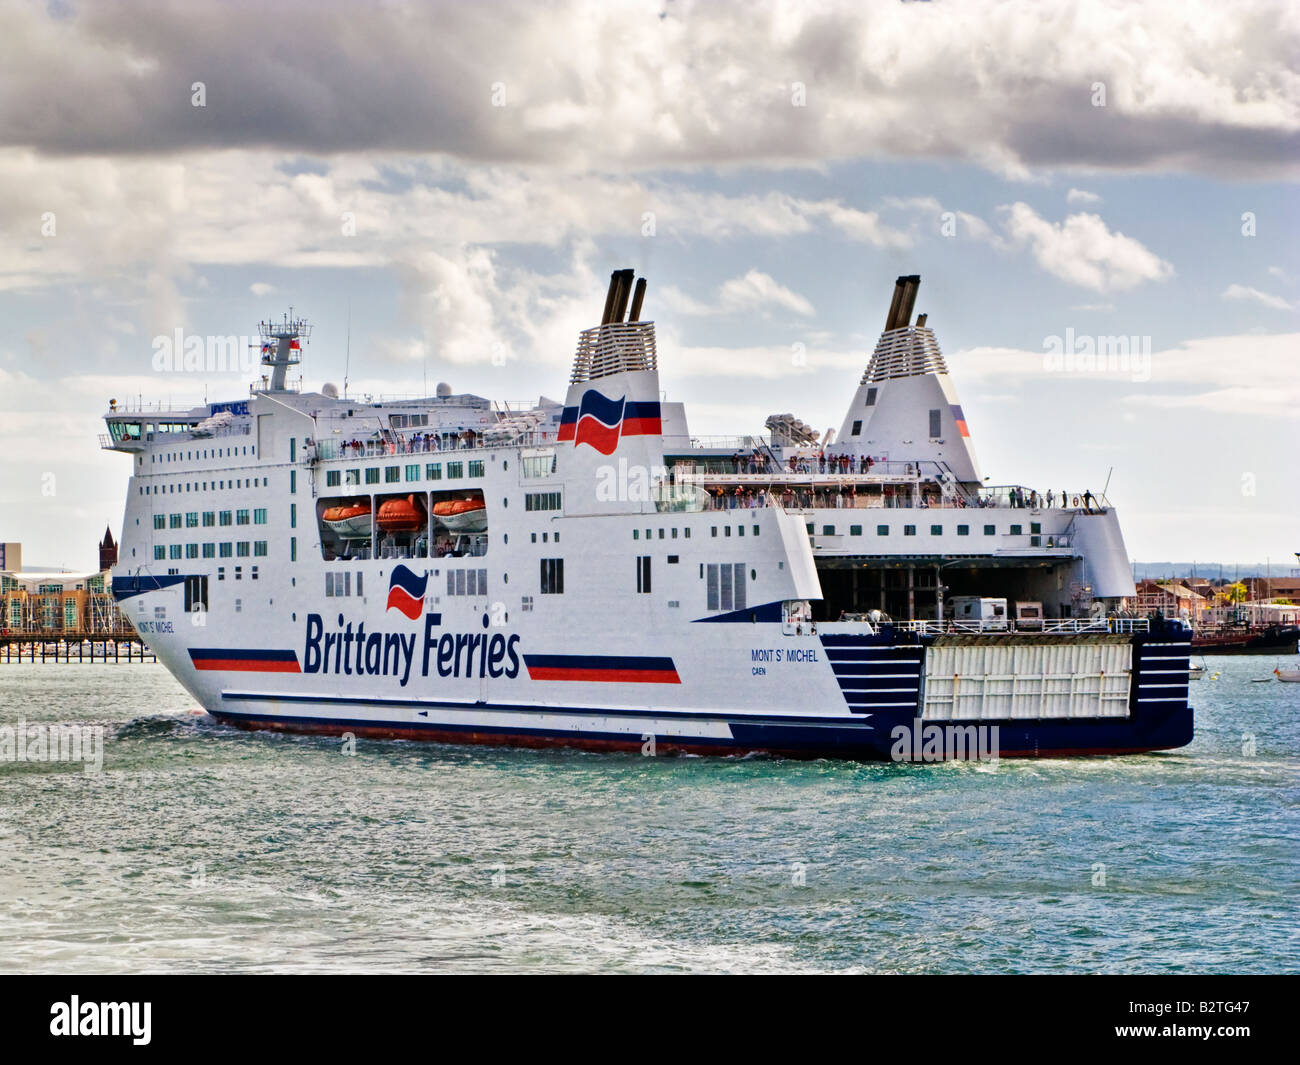 Large Brittany Ferries cross channel car ferry in Portsmouth Harbour, England, UK - Stock Image